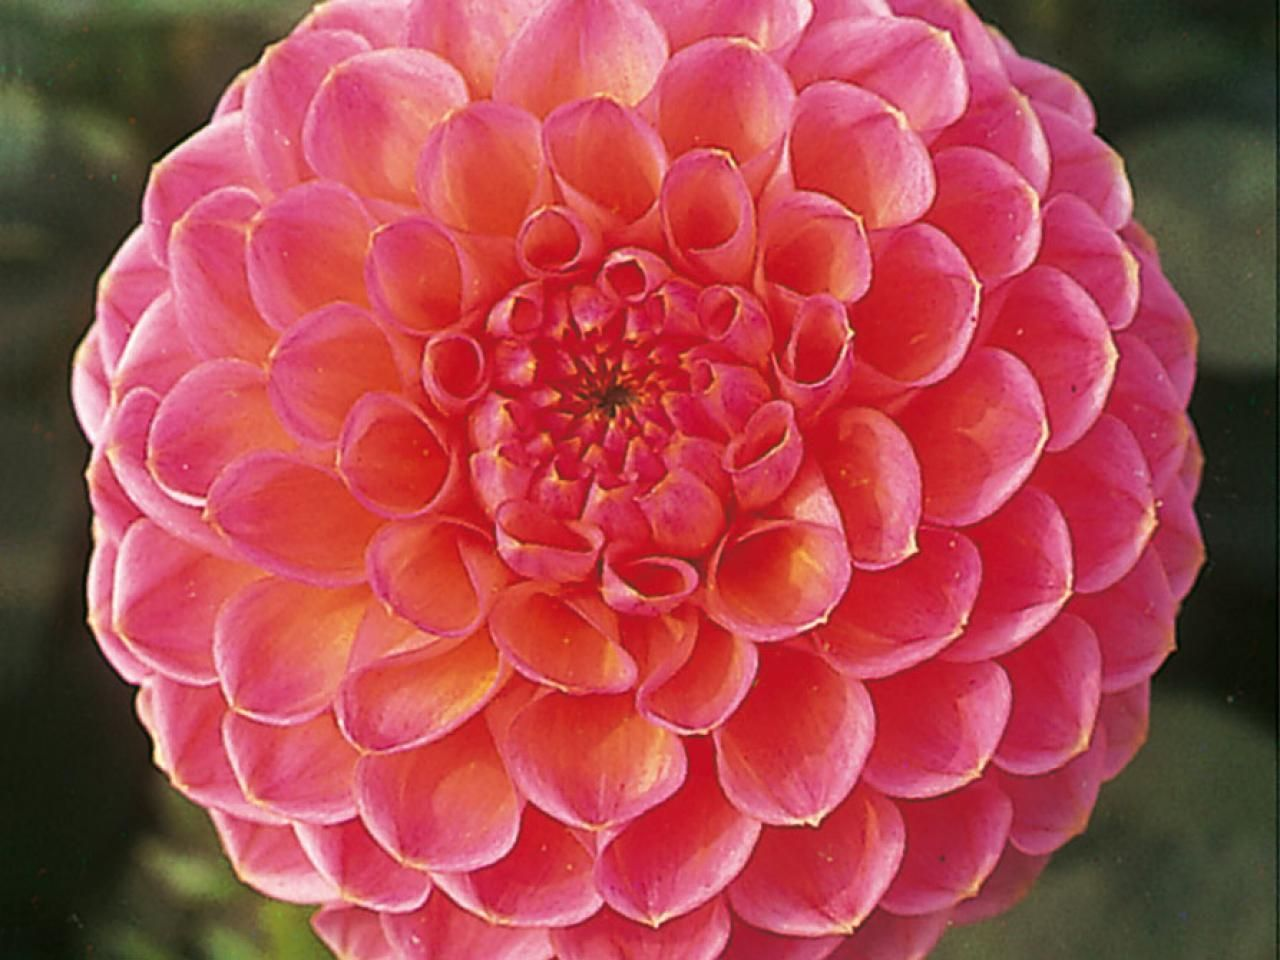 Pin by Everblue Fashion on Flowers   Pinterest   Flowers Learn how dahlia flowers can work in your outdoor space with this gardening  guide from HGTV